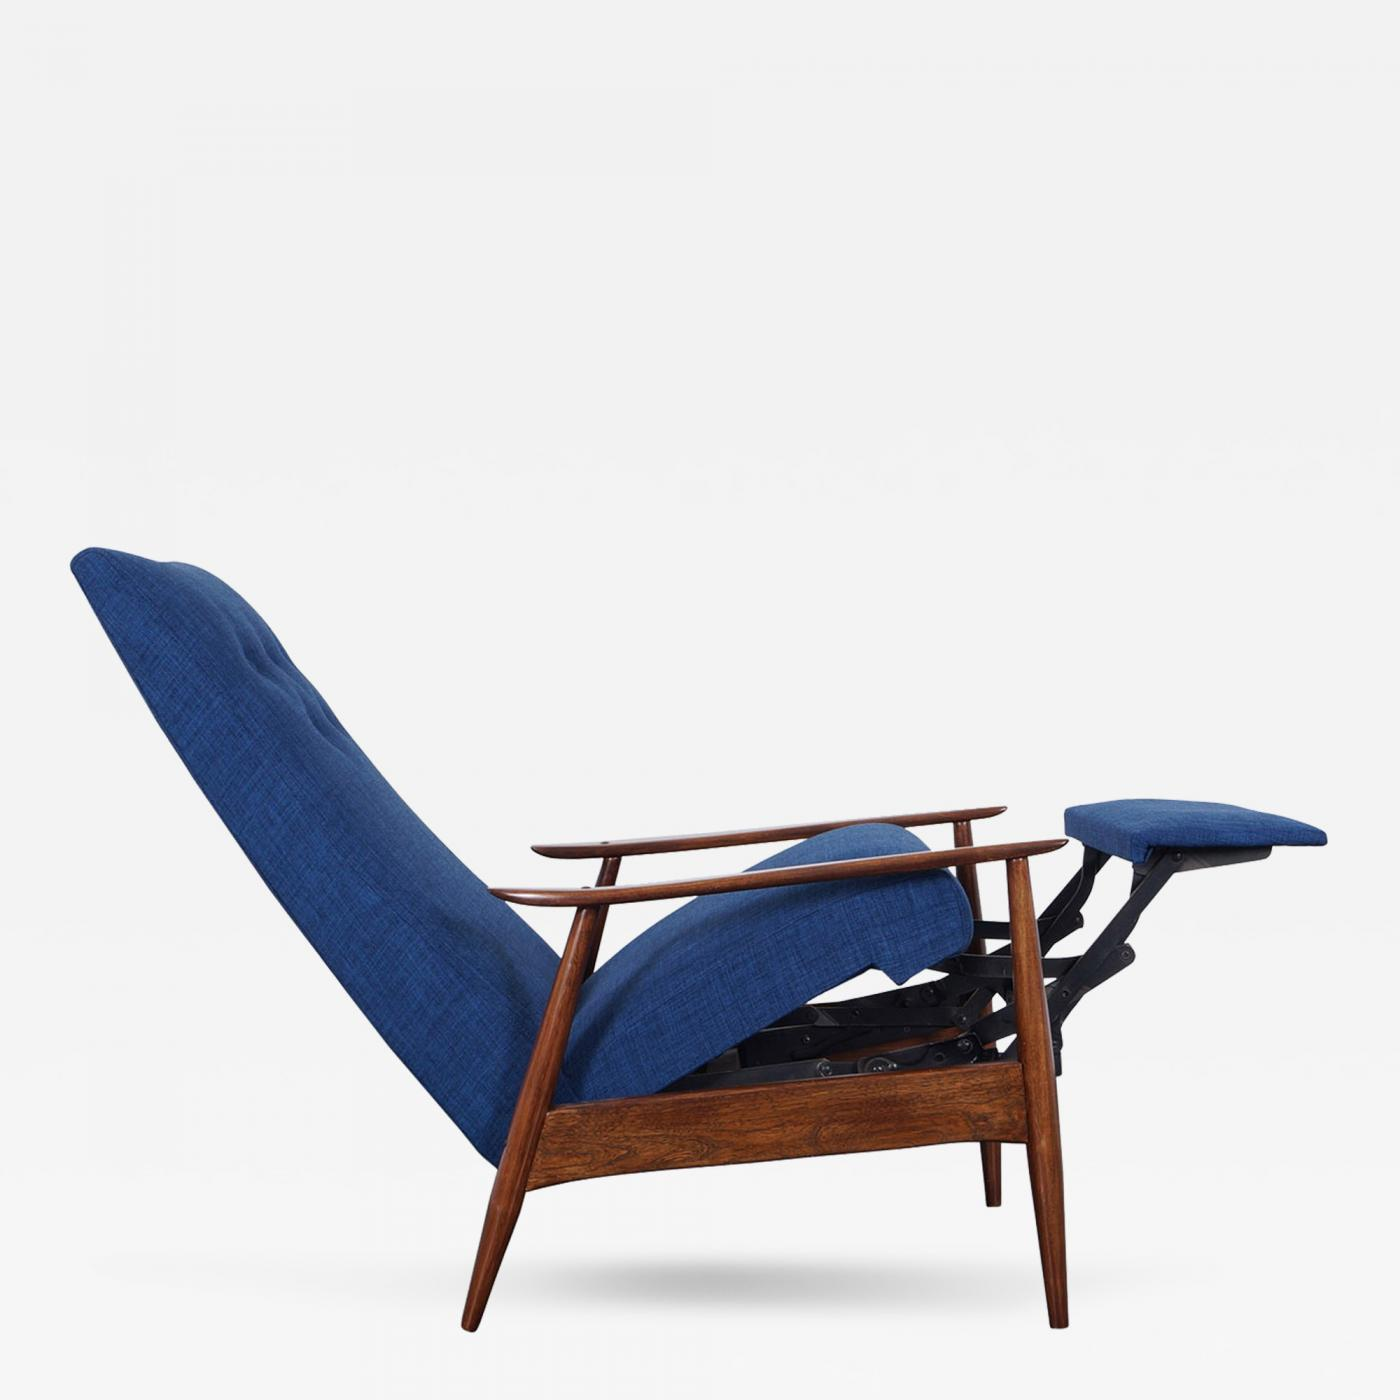 Milo Baughman Vintage Reclining Lounge Chair by Milo Baughman